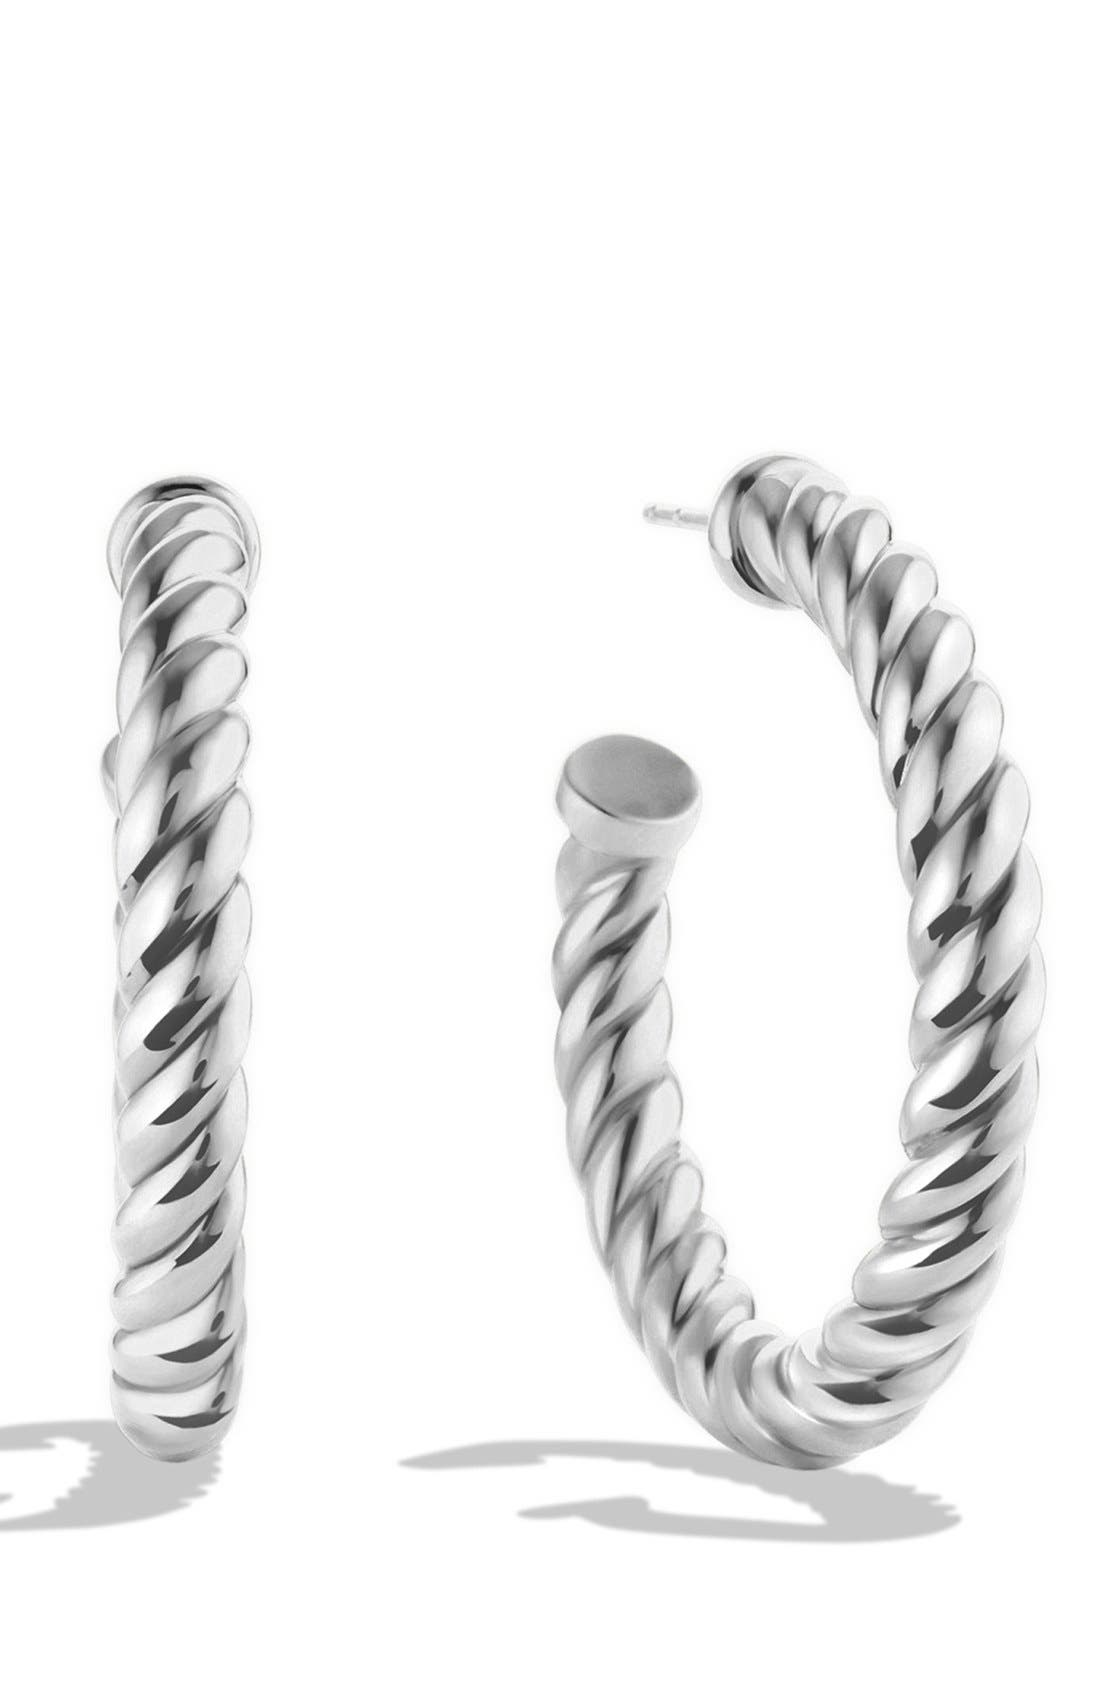 DAVID YURMAN,                             'Cable Classics' Hoop Earrings,                             Main thumbnail 1, color,                             SILVER